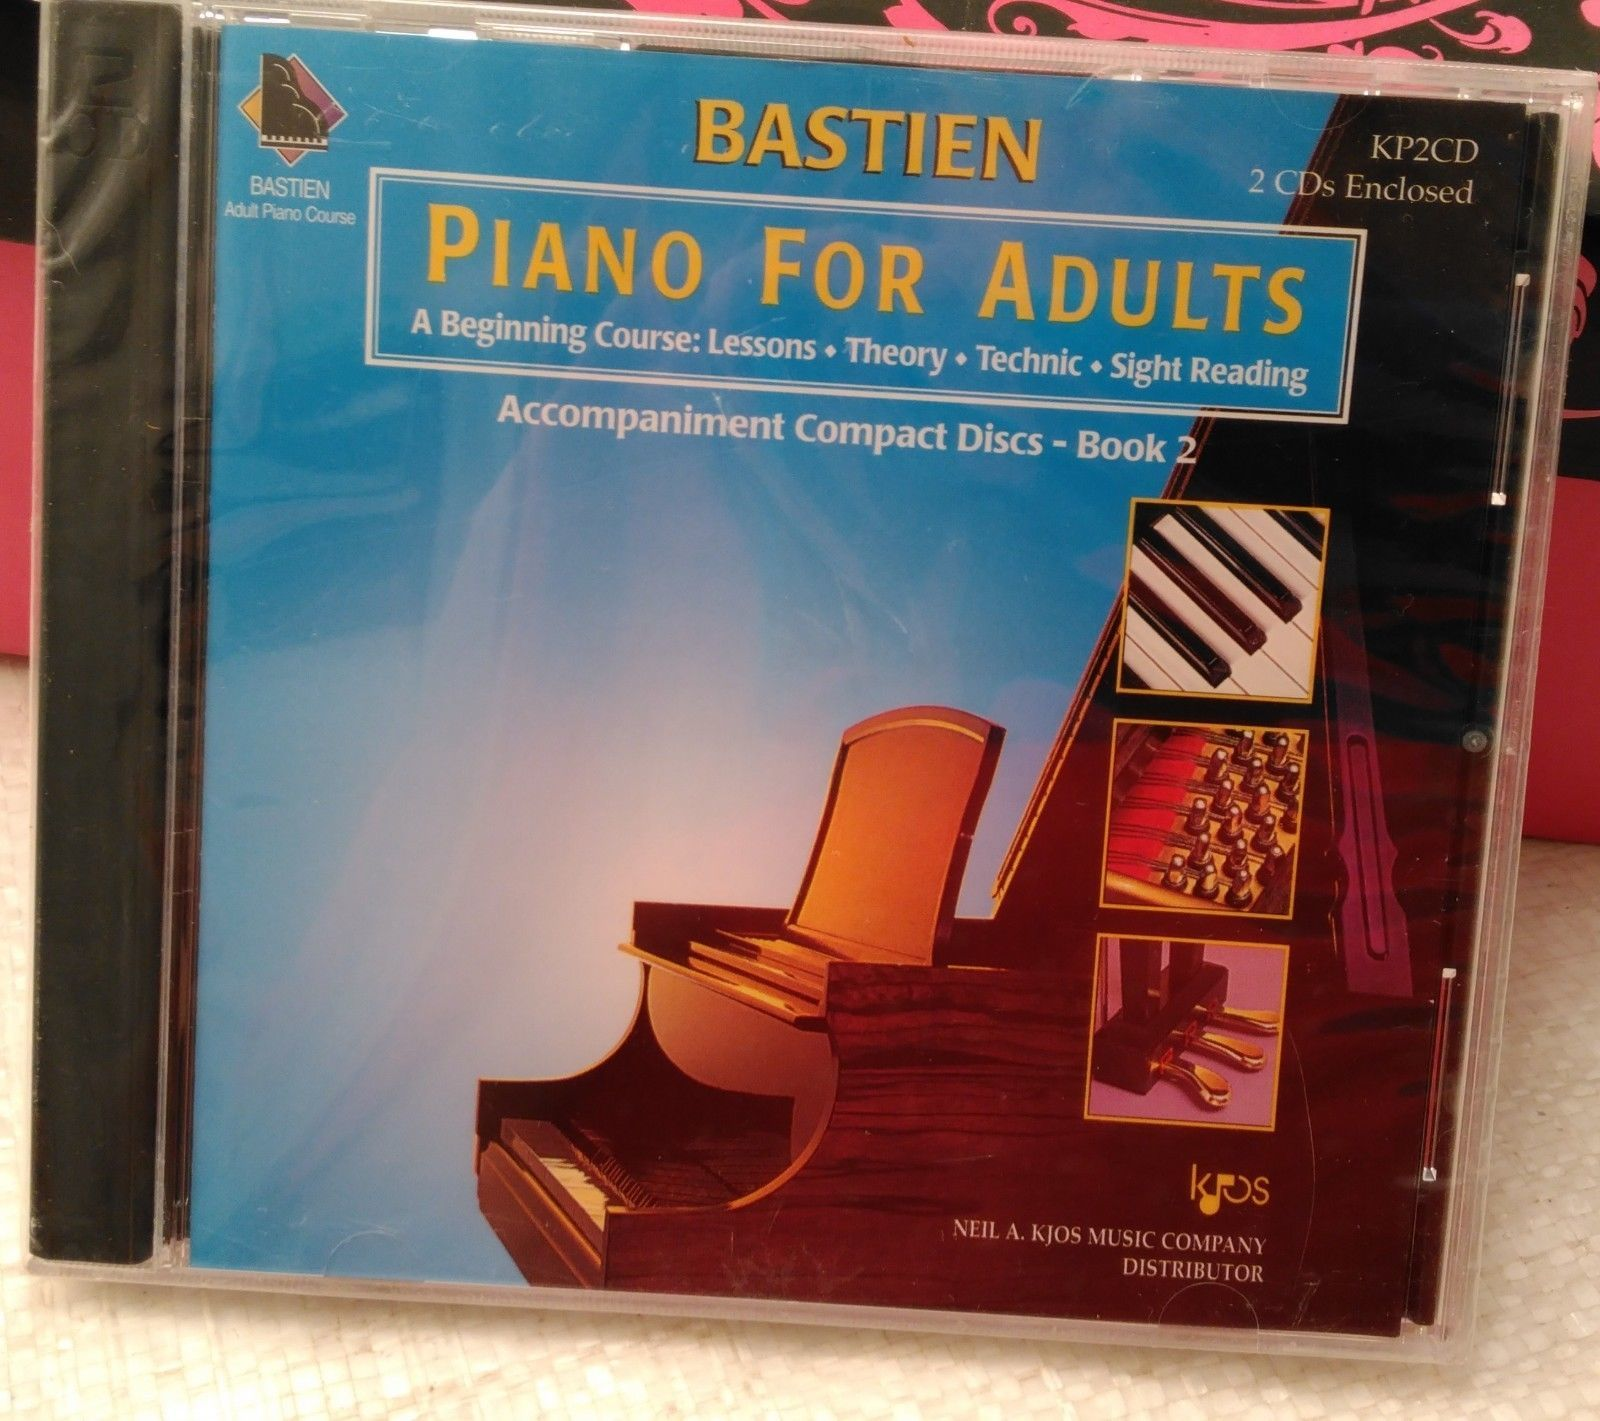 Bastien Piano For Adults, Book 2 (CD Only) 2 CD set